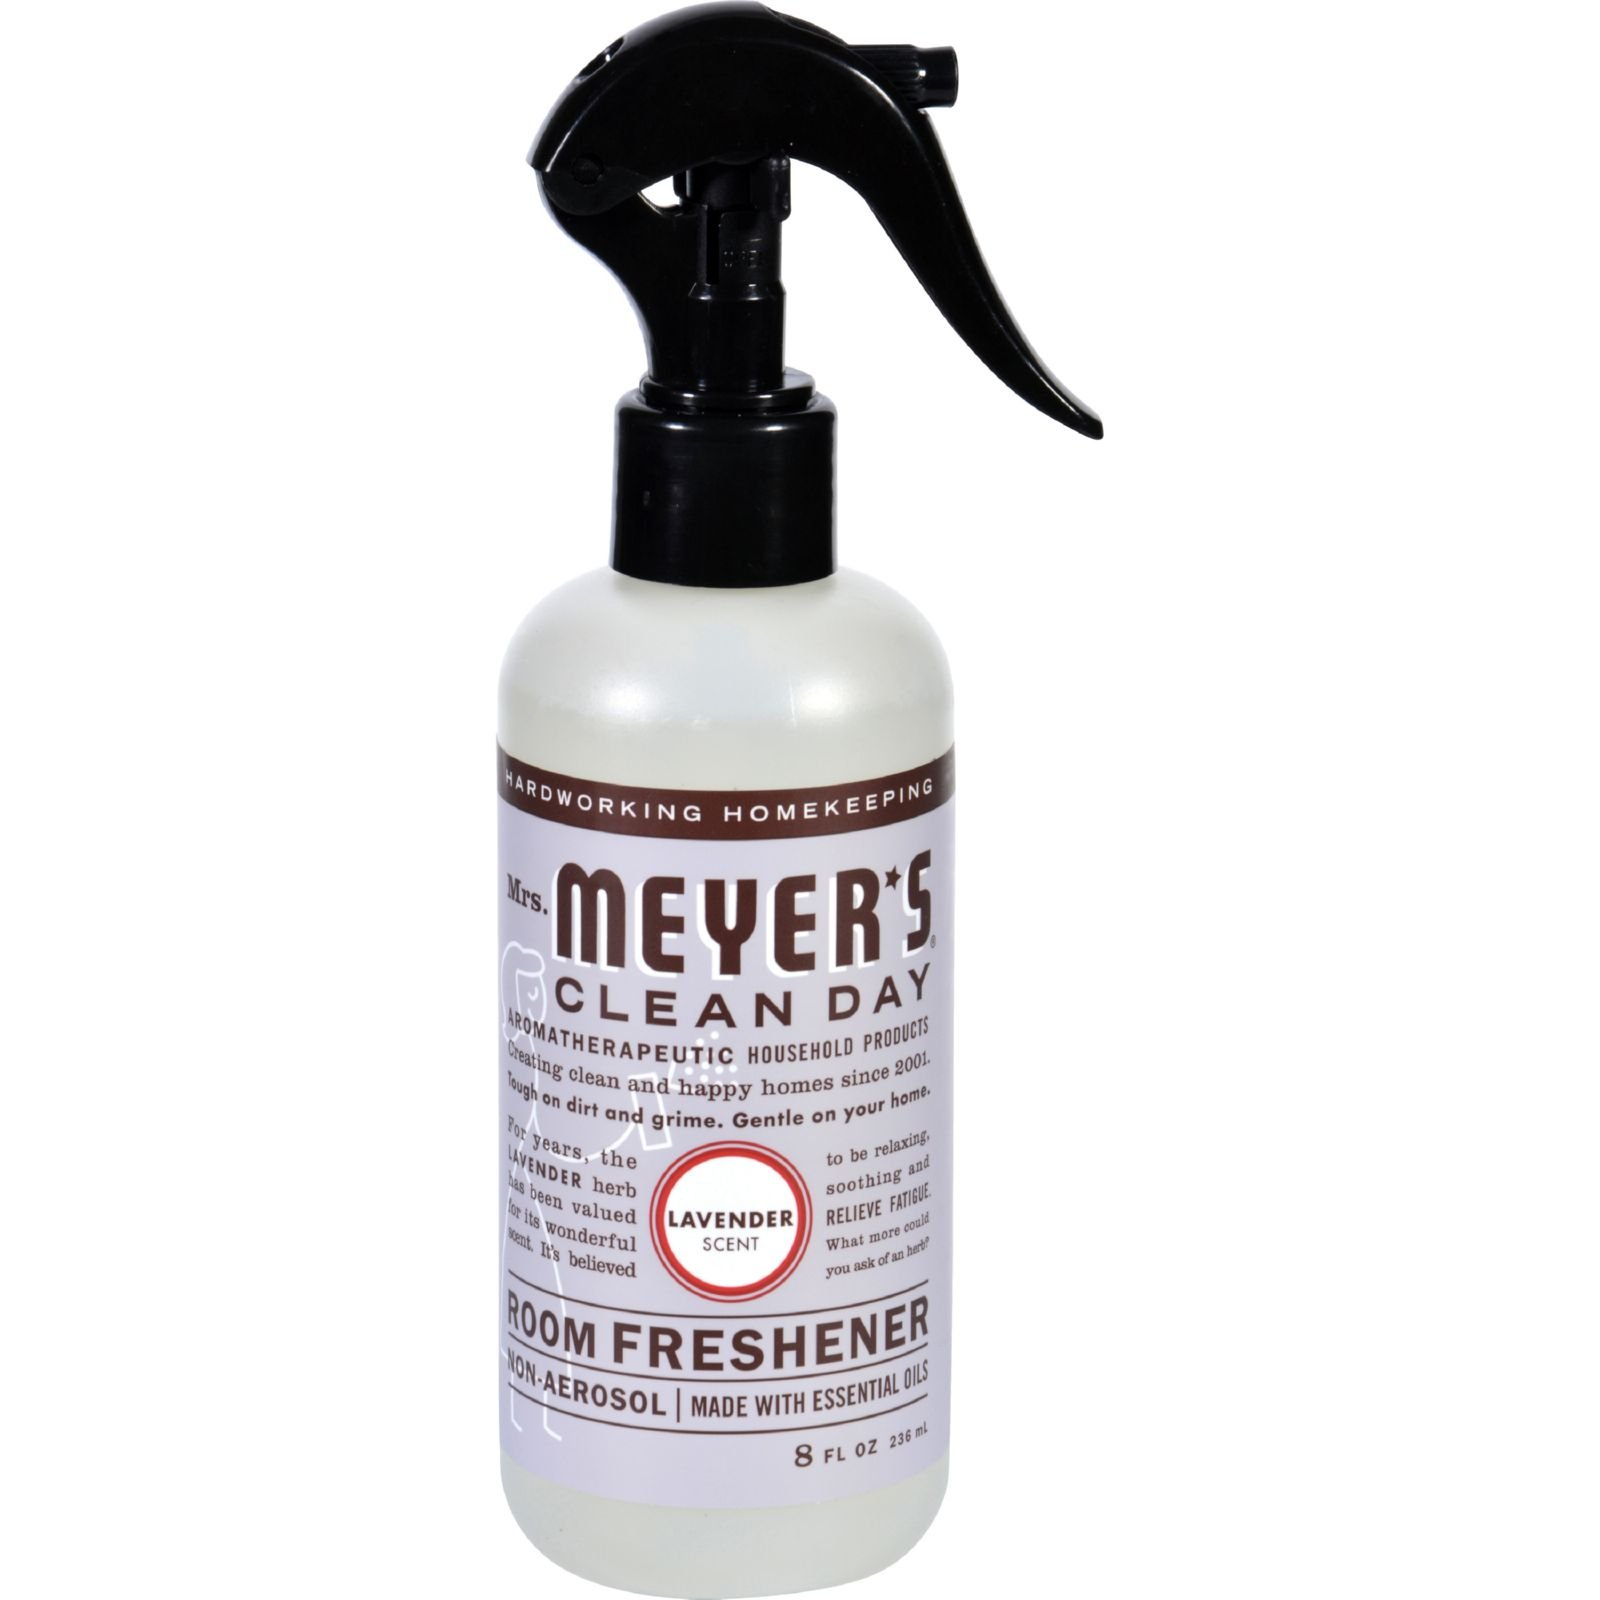 Mrs Meyers Clean Day Room Freshener - Lavender, 8 Fluid Ounce - 6 per case. by Mrs. Meyer's Clean Day (Image #1)